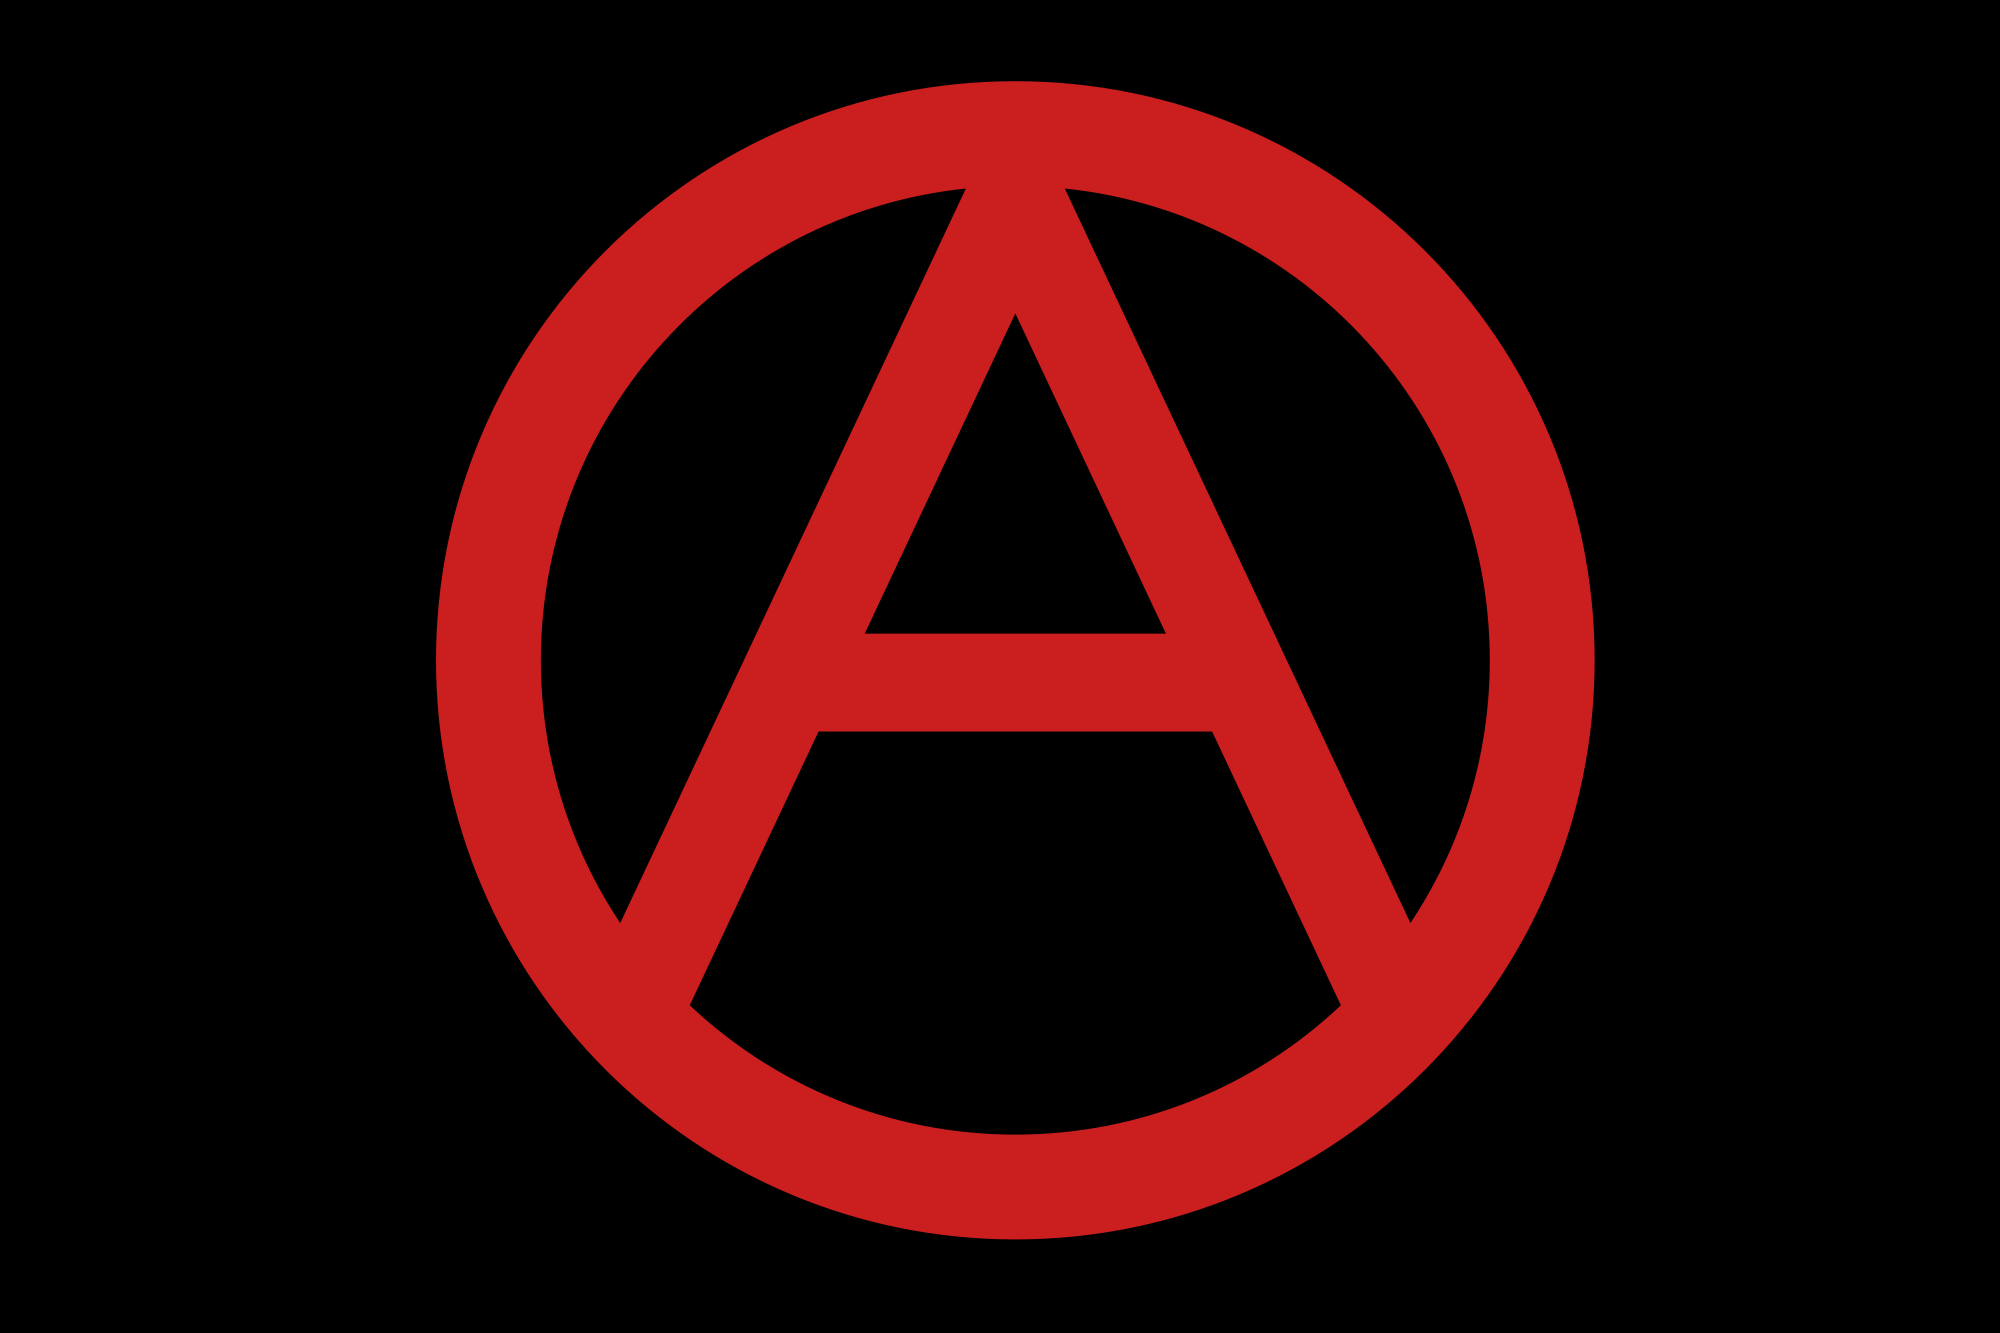 Logo Anarchy Us PNG - 33255